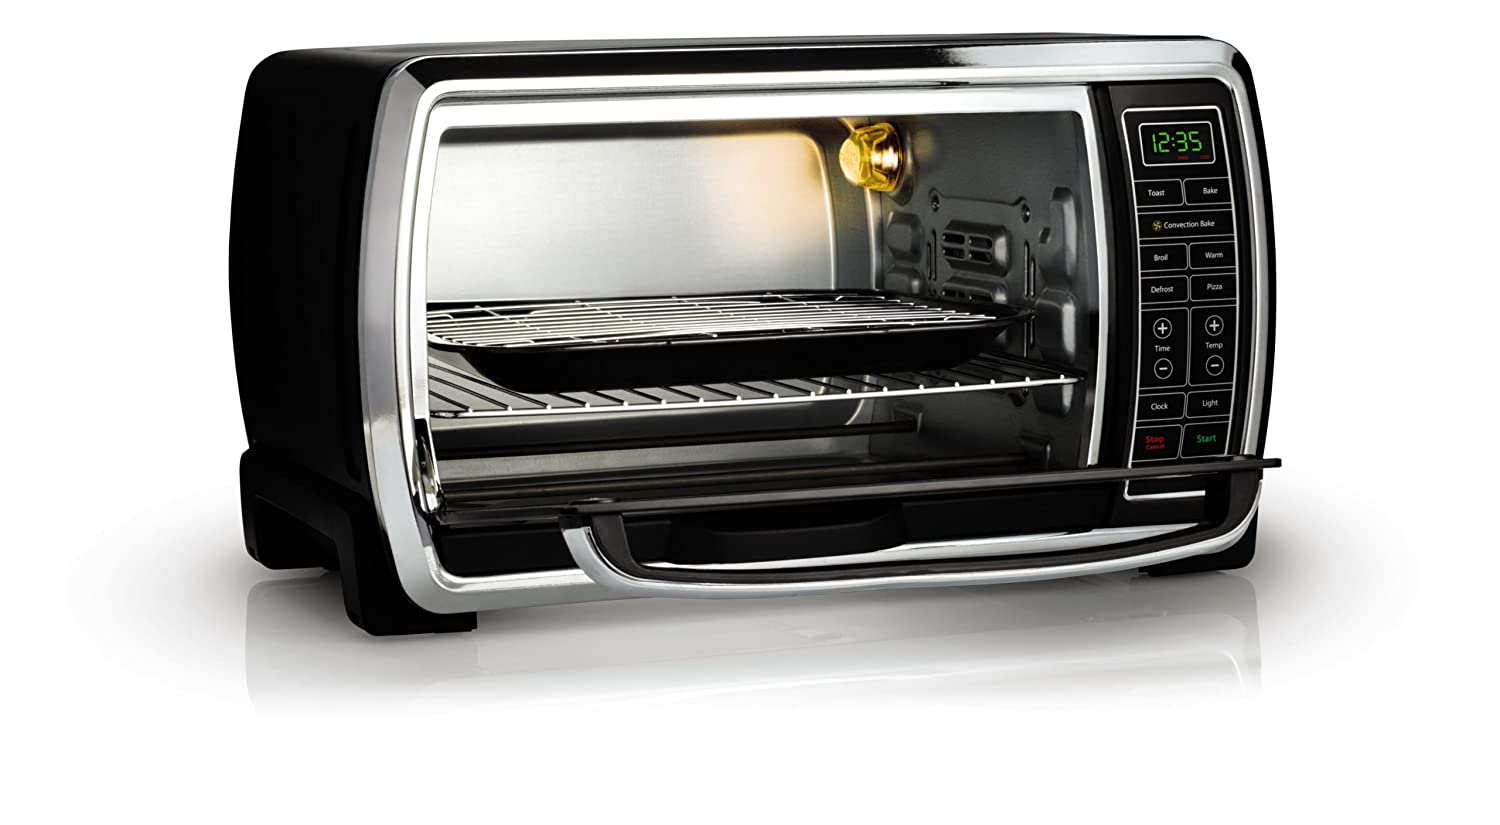 Electric Toaster Oven Microwave Cooking Digital Control Stainless Home ...